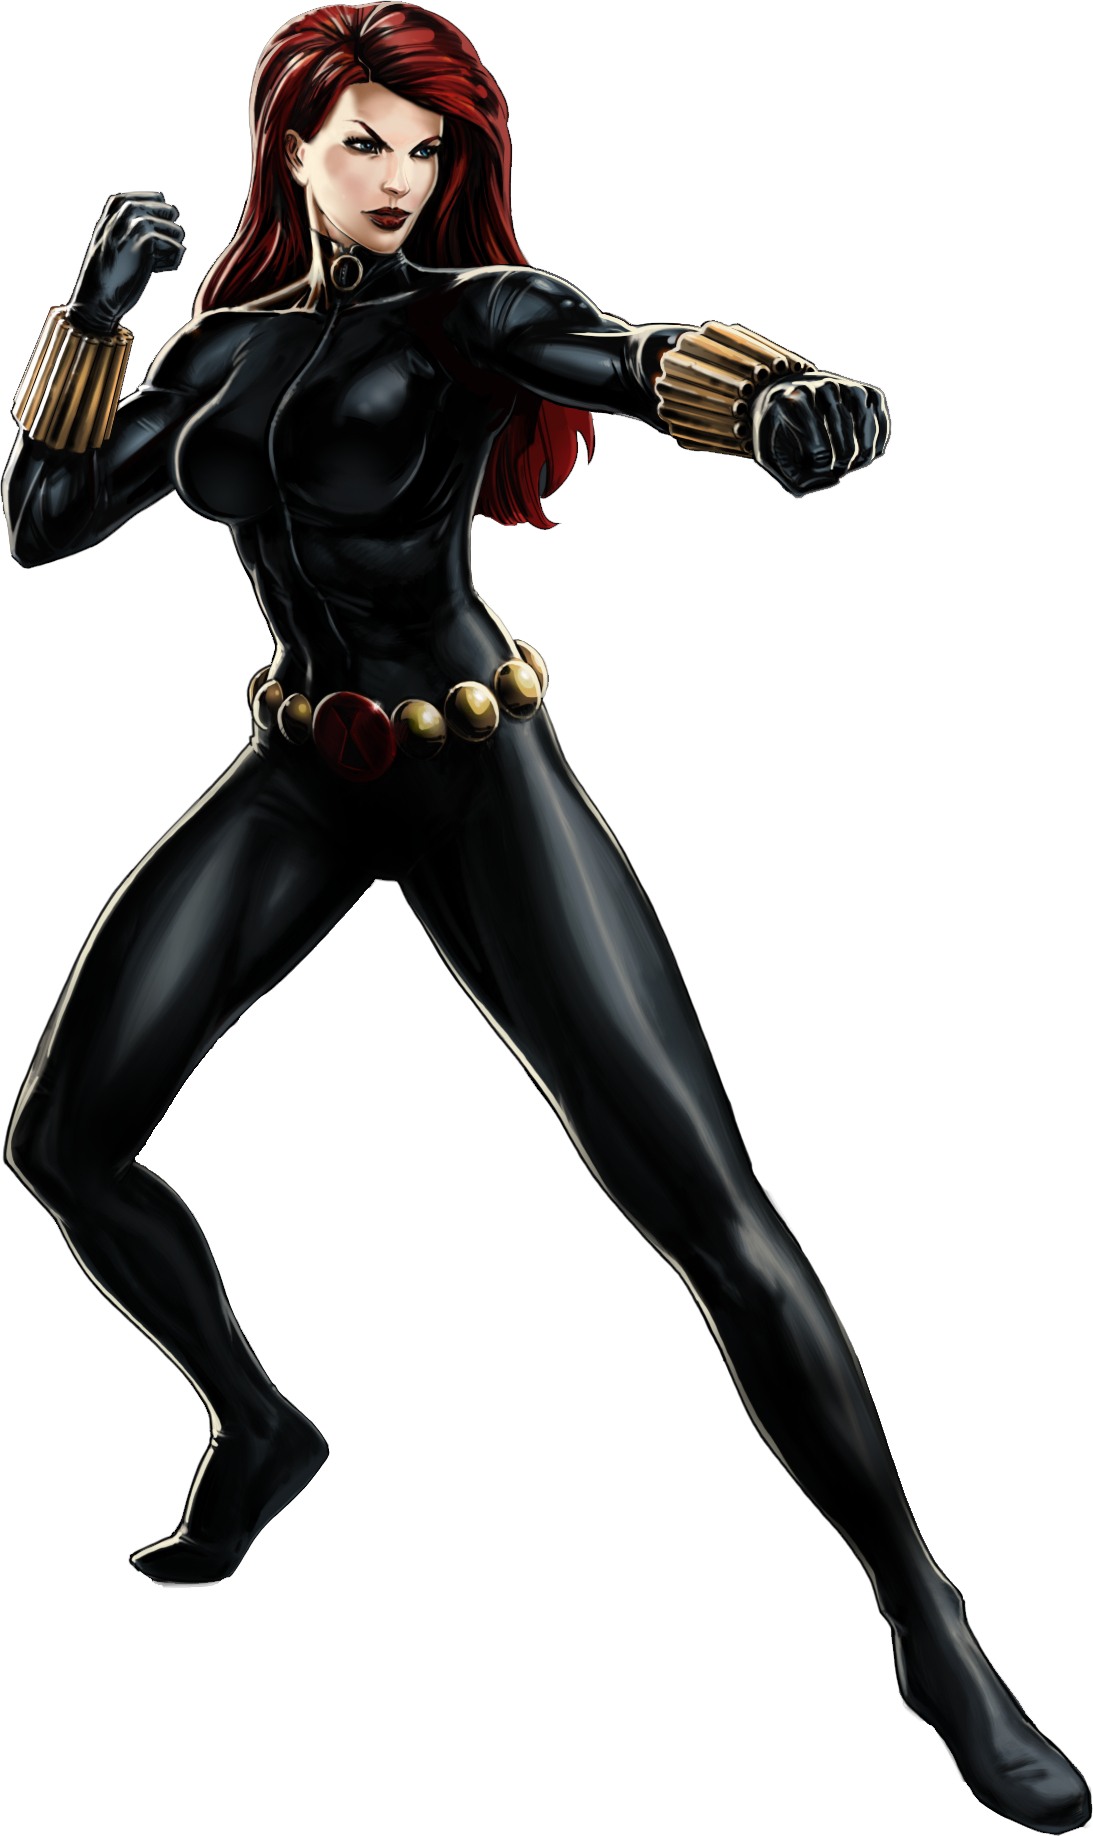 Image - Black Widow Portrait Art.png | Marvel: Avengers Alliance Wiki |  FANDOM powered by Wikia - Black Widow PNG